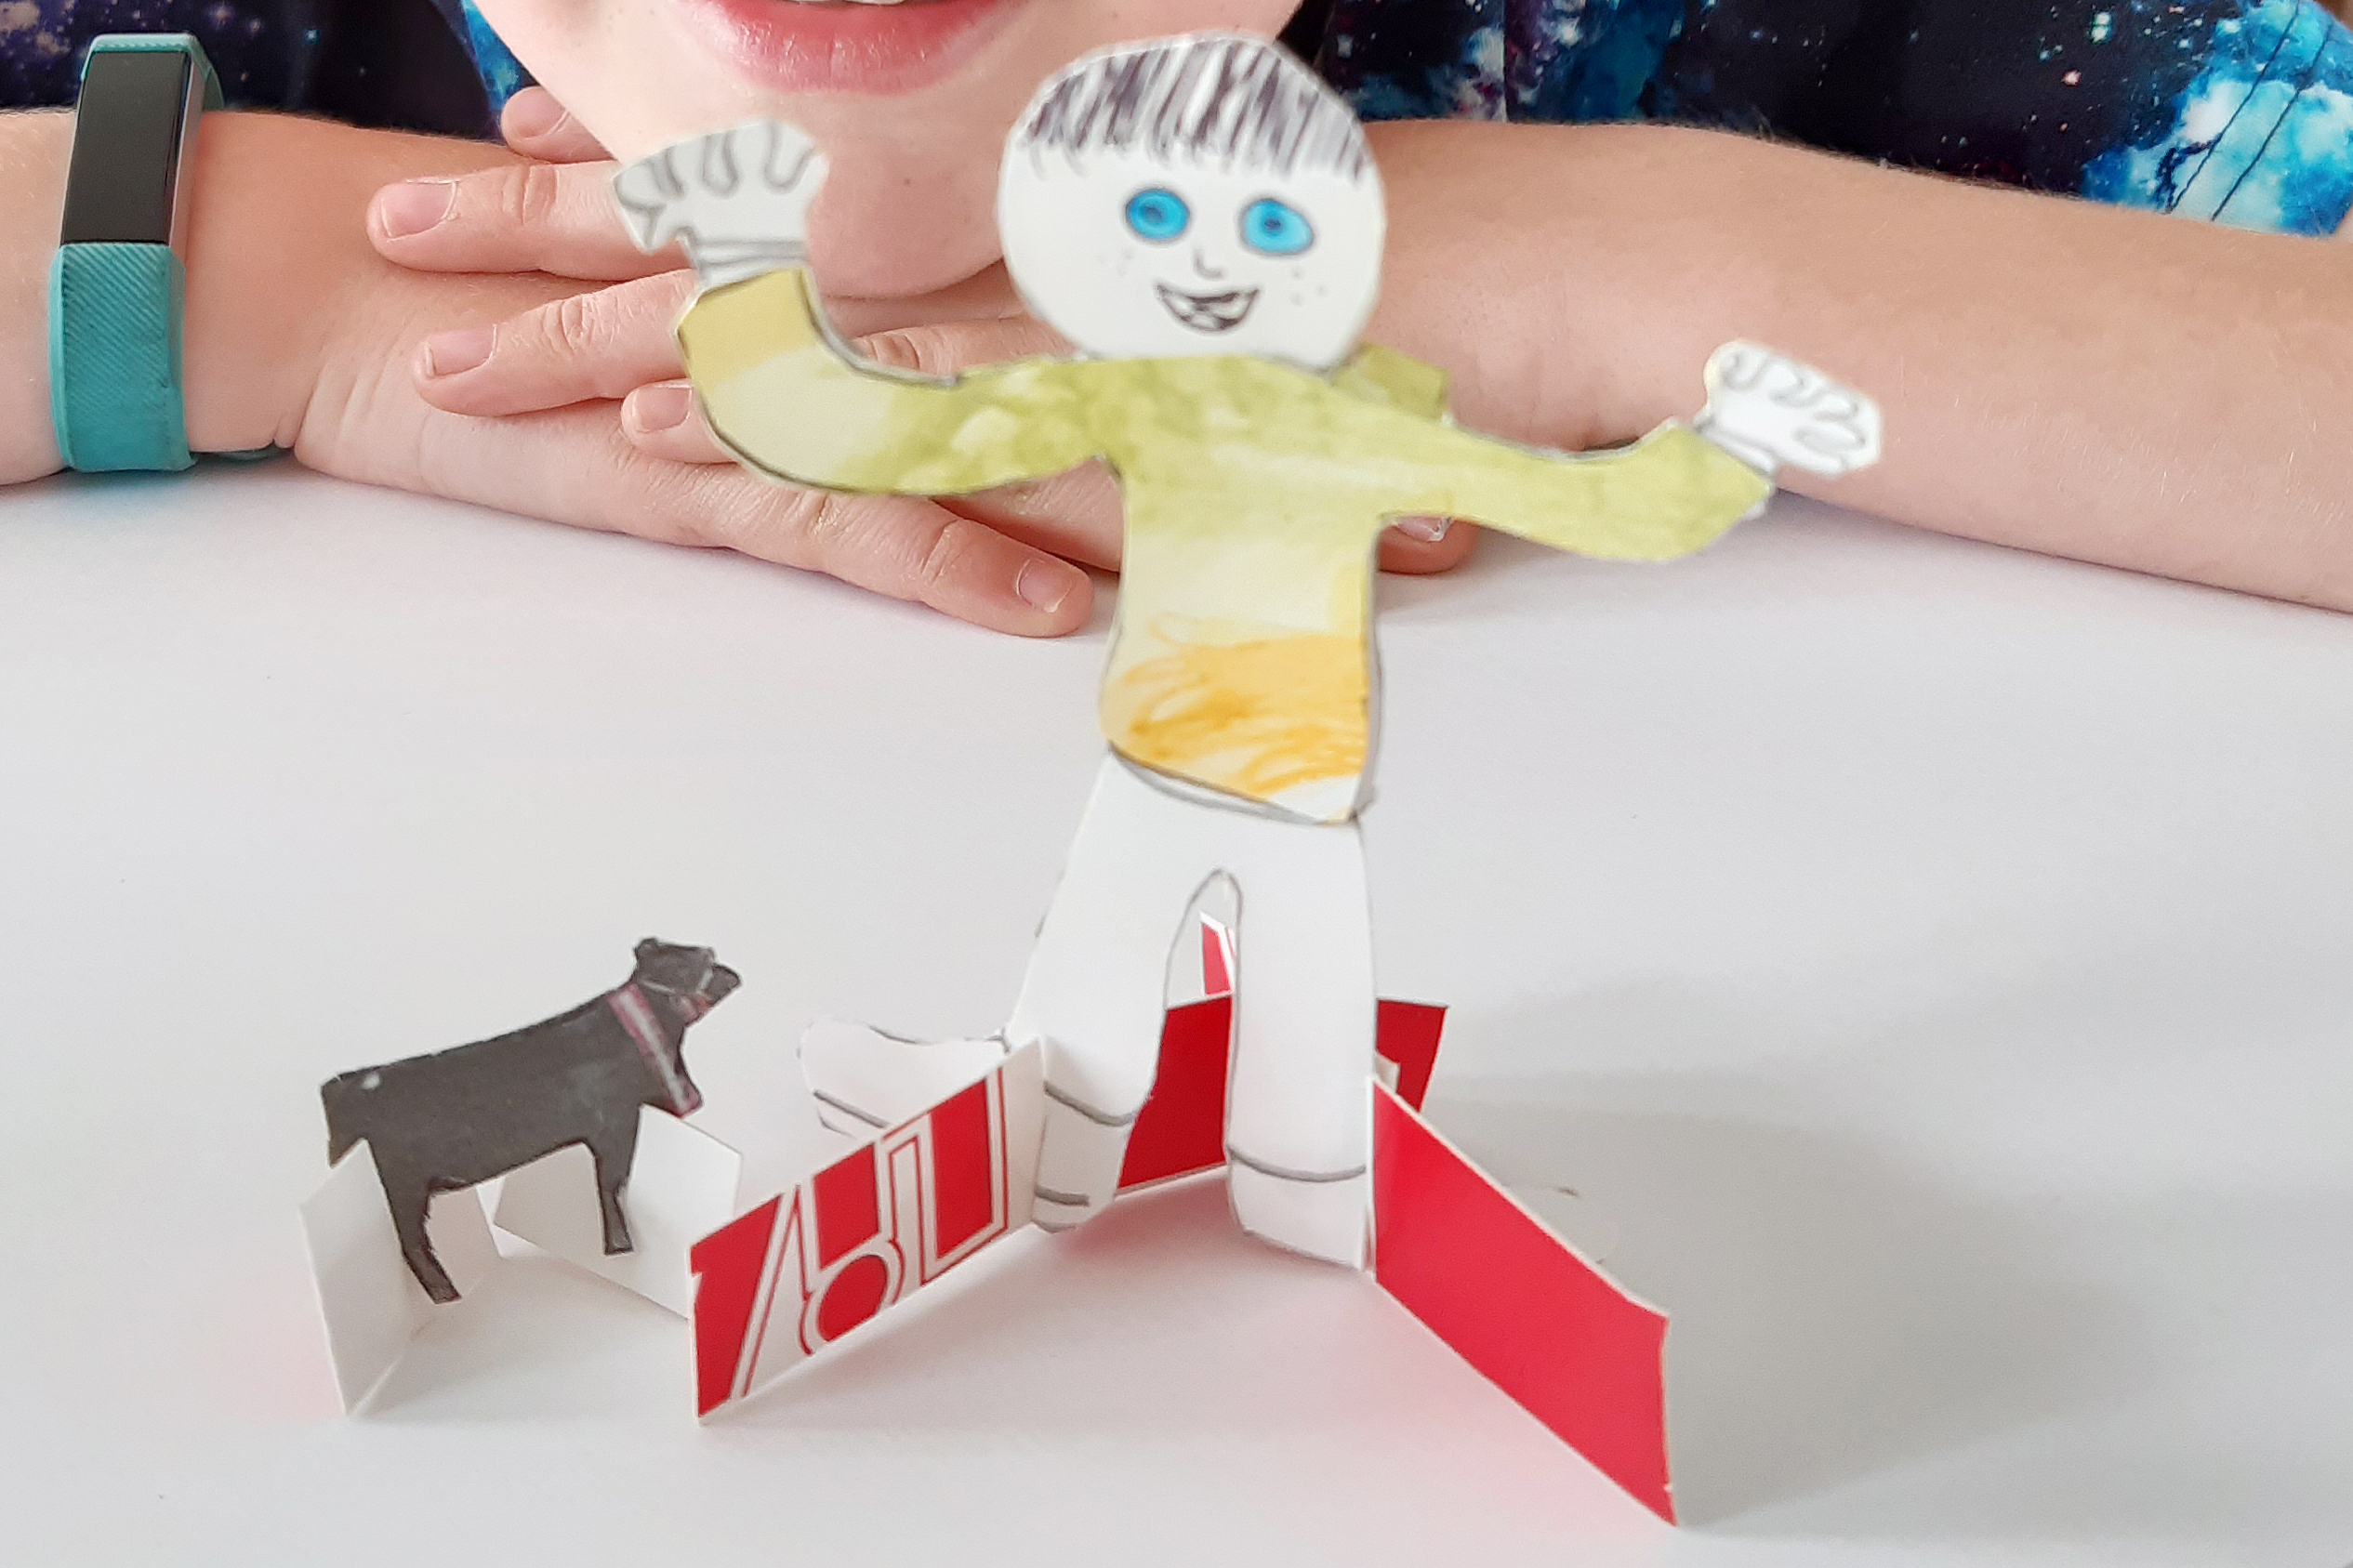 A paper man and dog from Kids own publishing art project with children